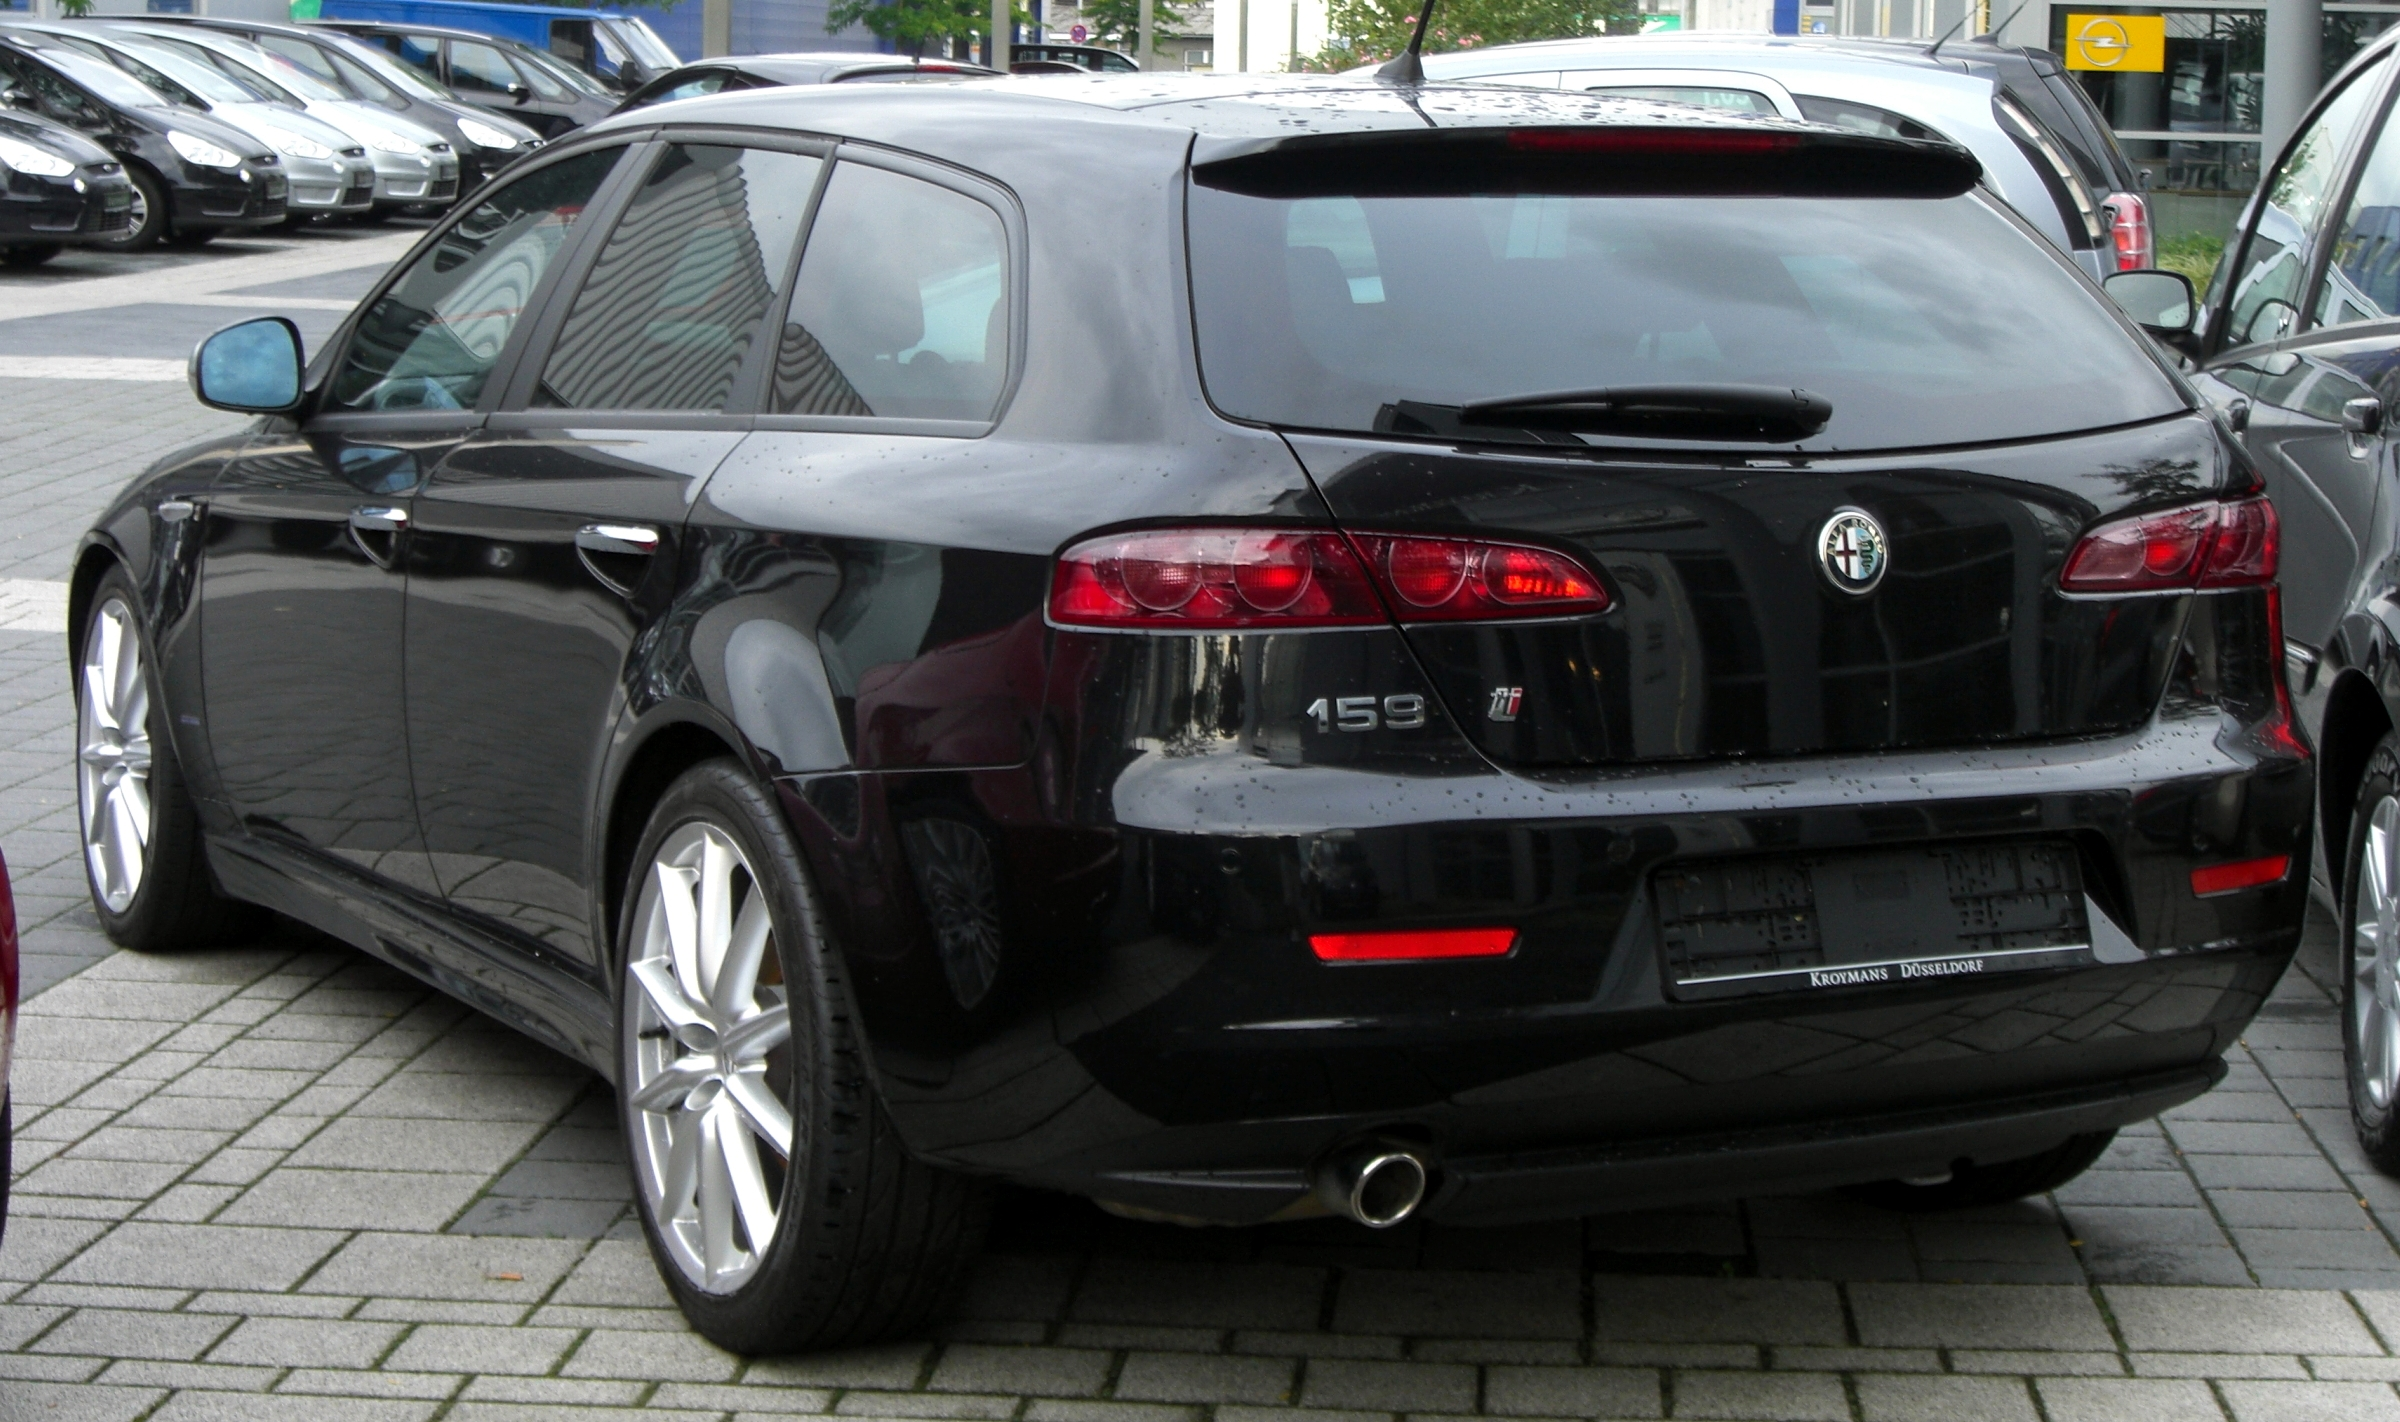 file alfa romeo 159ti sport wagon rear jpg wikipedia. Black Bedroom Furniture Sets. Home Design Ideas